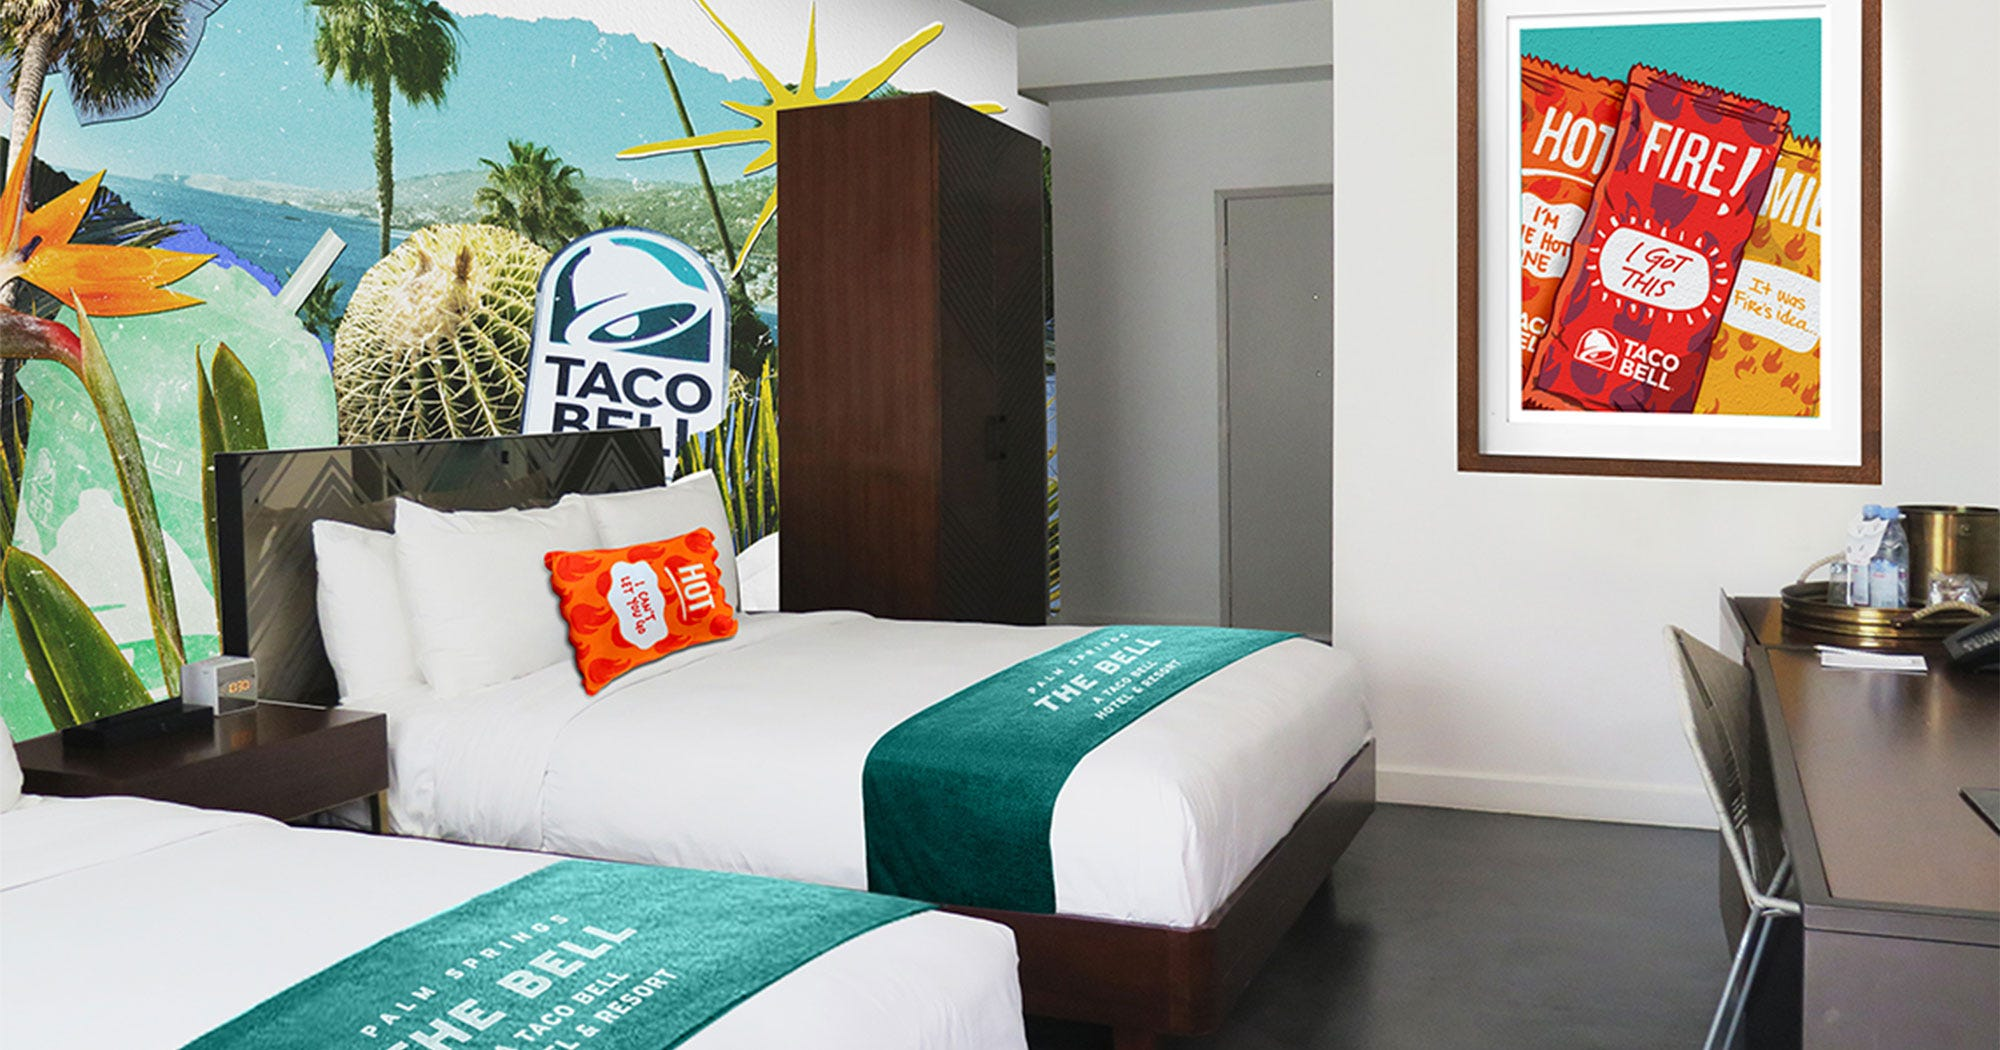 Attention Taco Lovers: Here's How To Book A Stay At The Taco Bell Hotel